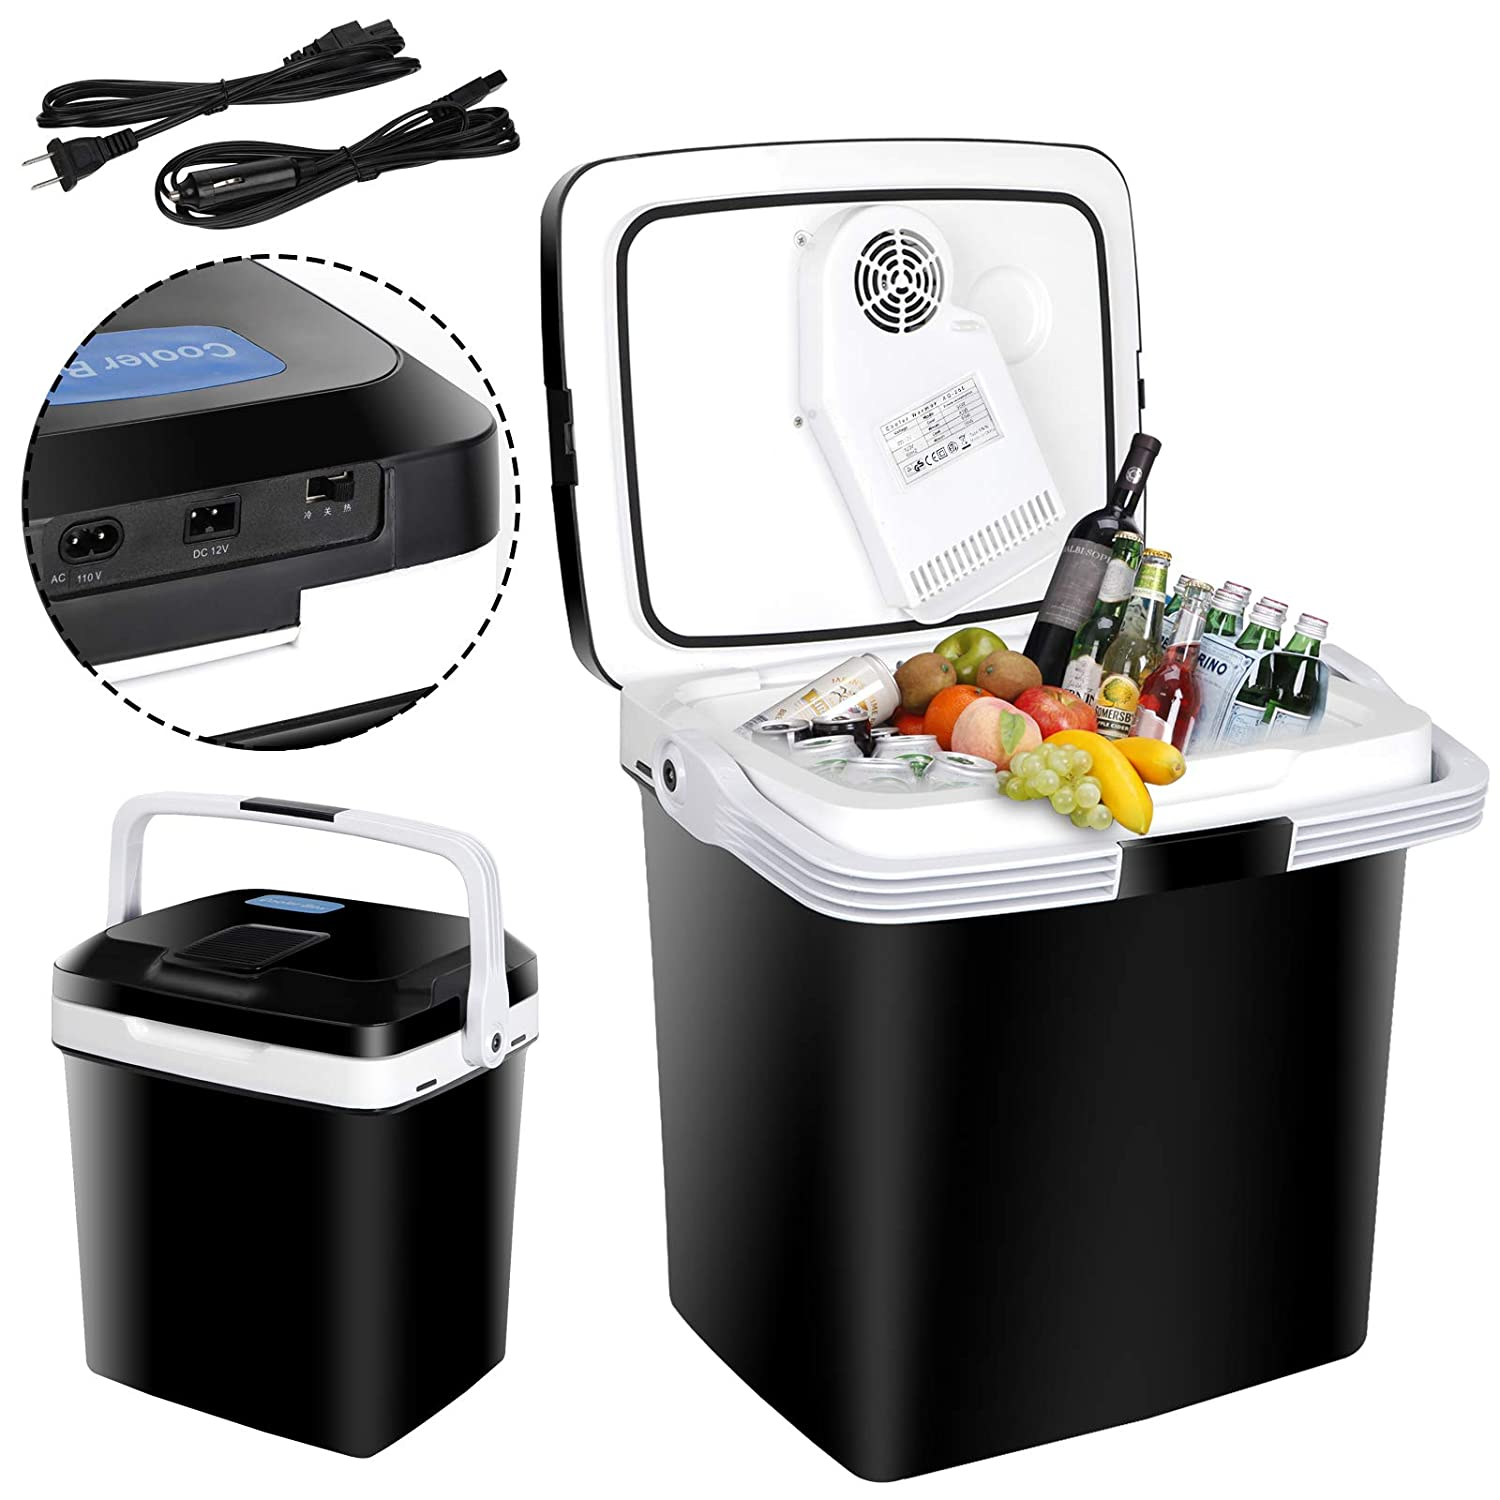 ZENY Mini Fridge Electric Cooler and Warmer for Car- 12V DC Electric Cooler Car Refrigerator with Automatic Locking Handle, 28 Quart Portable Car Fridge for Travel and Camping